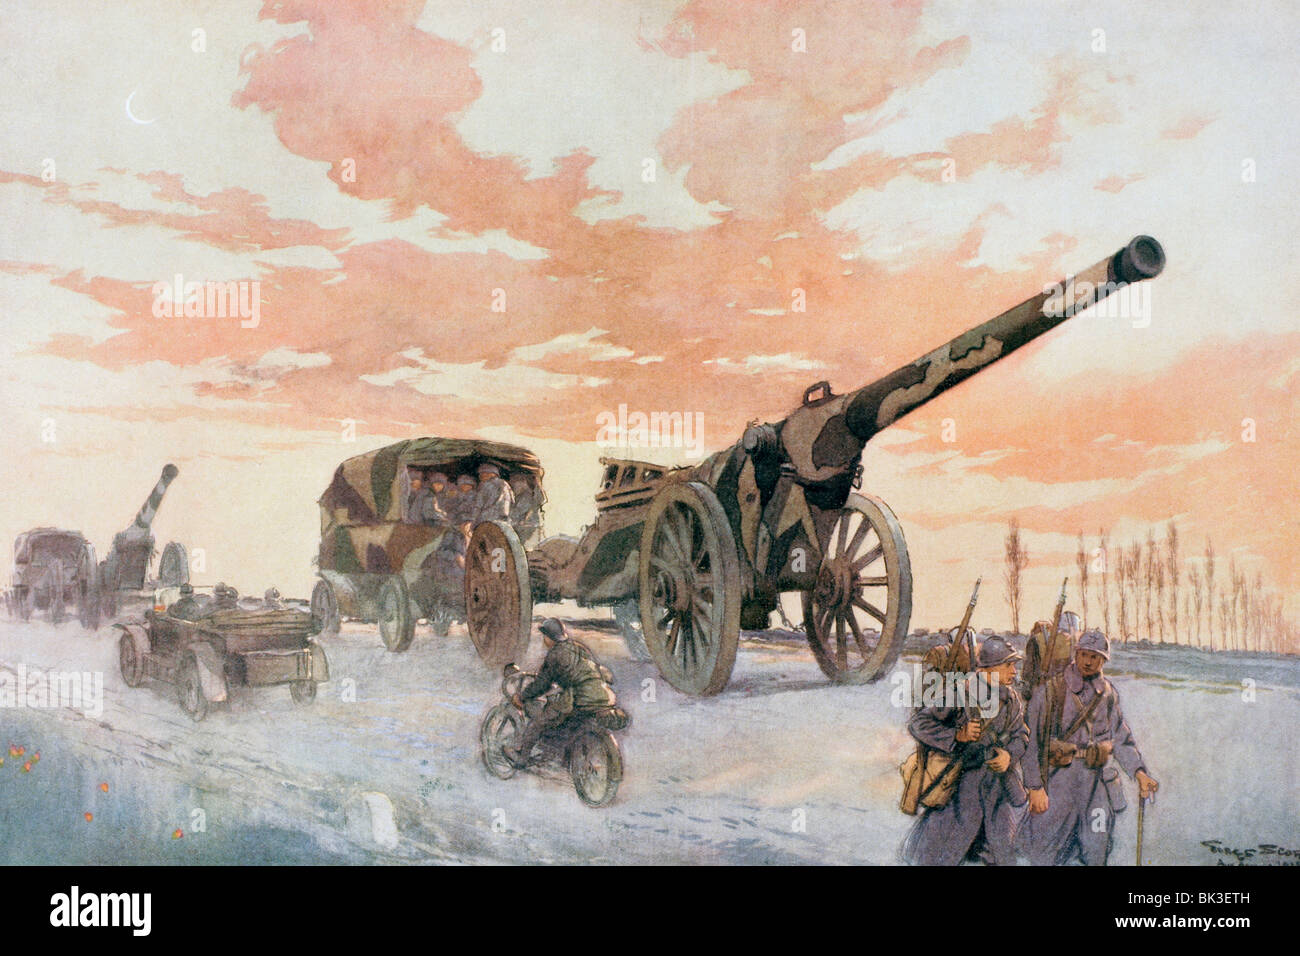 Convoy of mobile artillery during the First World War. - Stock Image